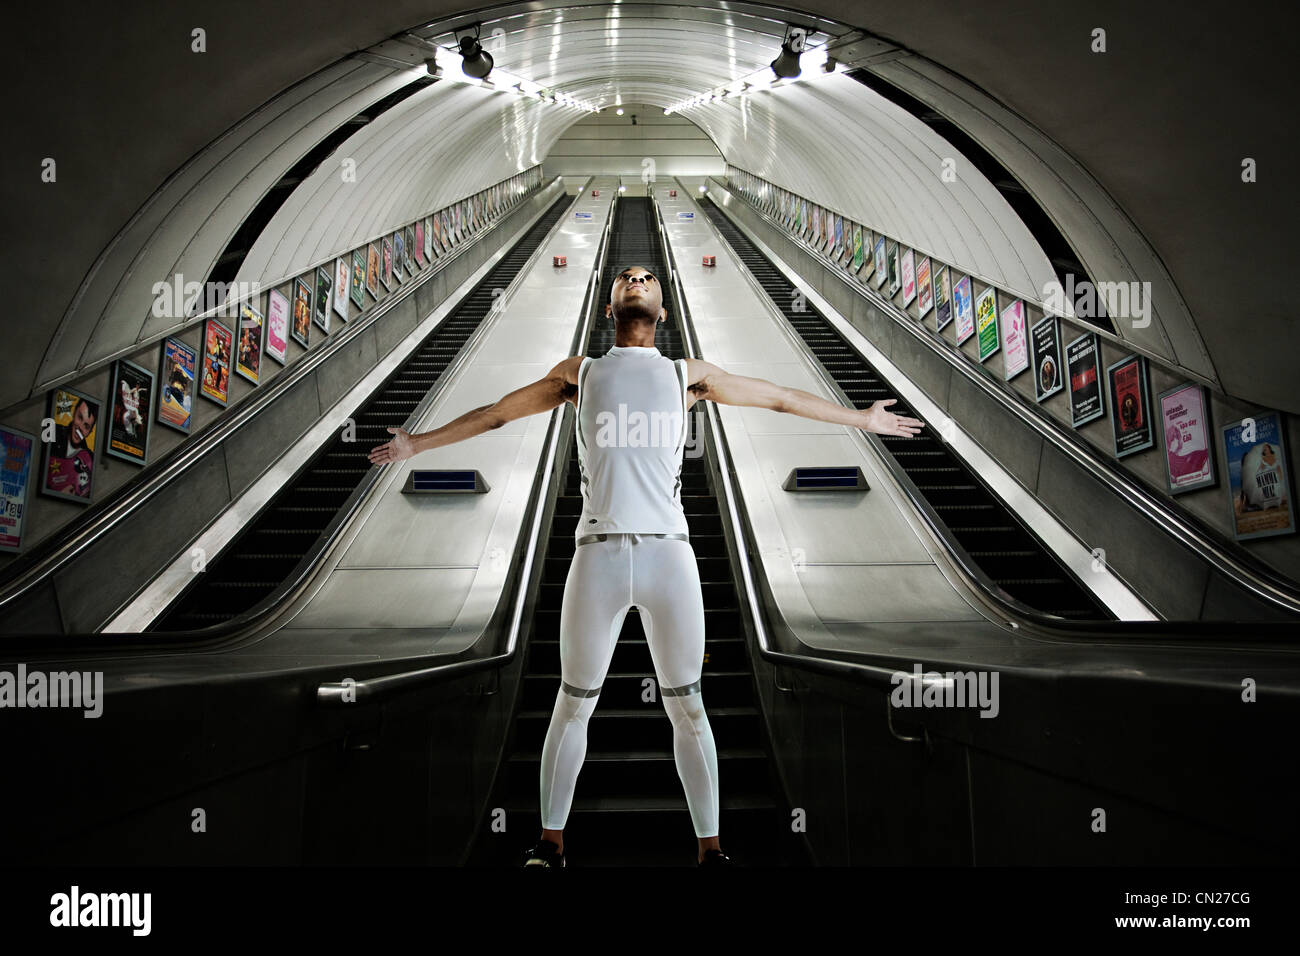 Olympic competitor standing at bottom of escalators - Stock Image